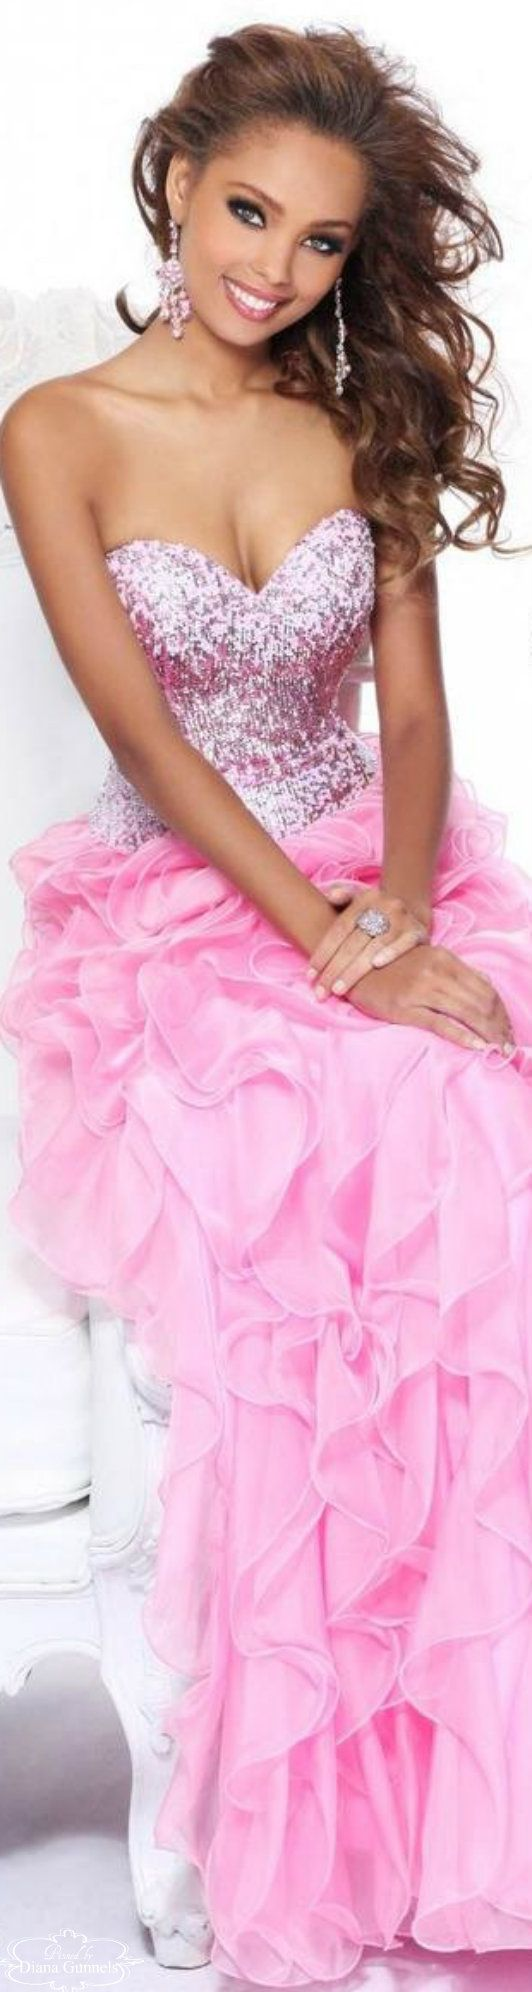 pink hill girls Long prom dresses, short prom dresses featuring prom dresses from the top prom dress designers including sherri hill, jovani pink purple.